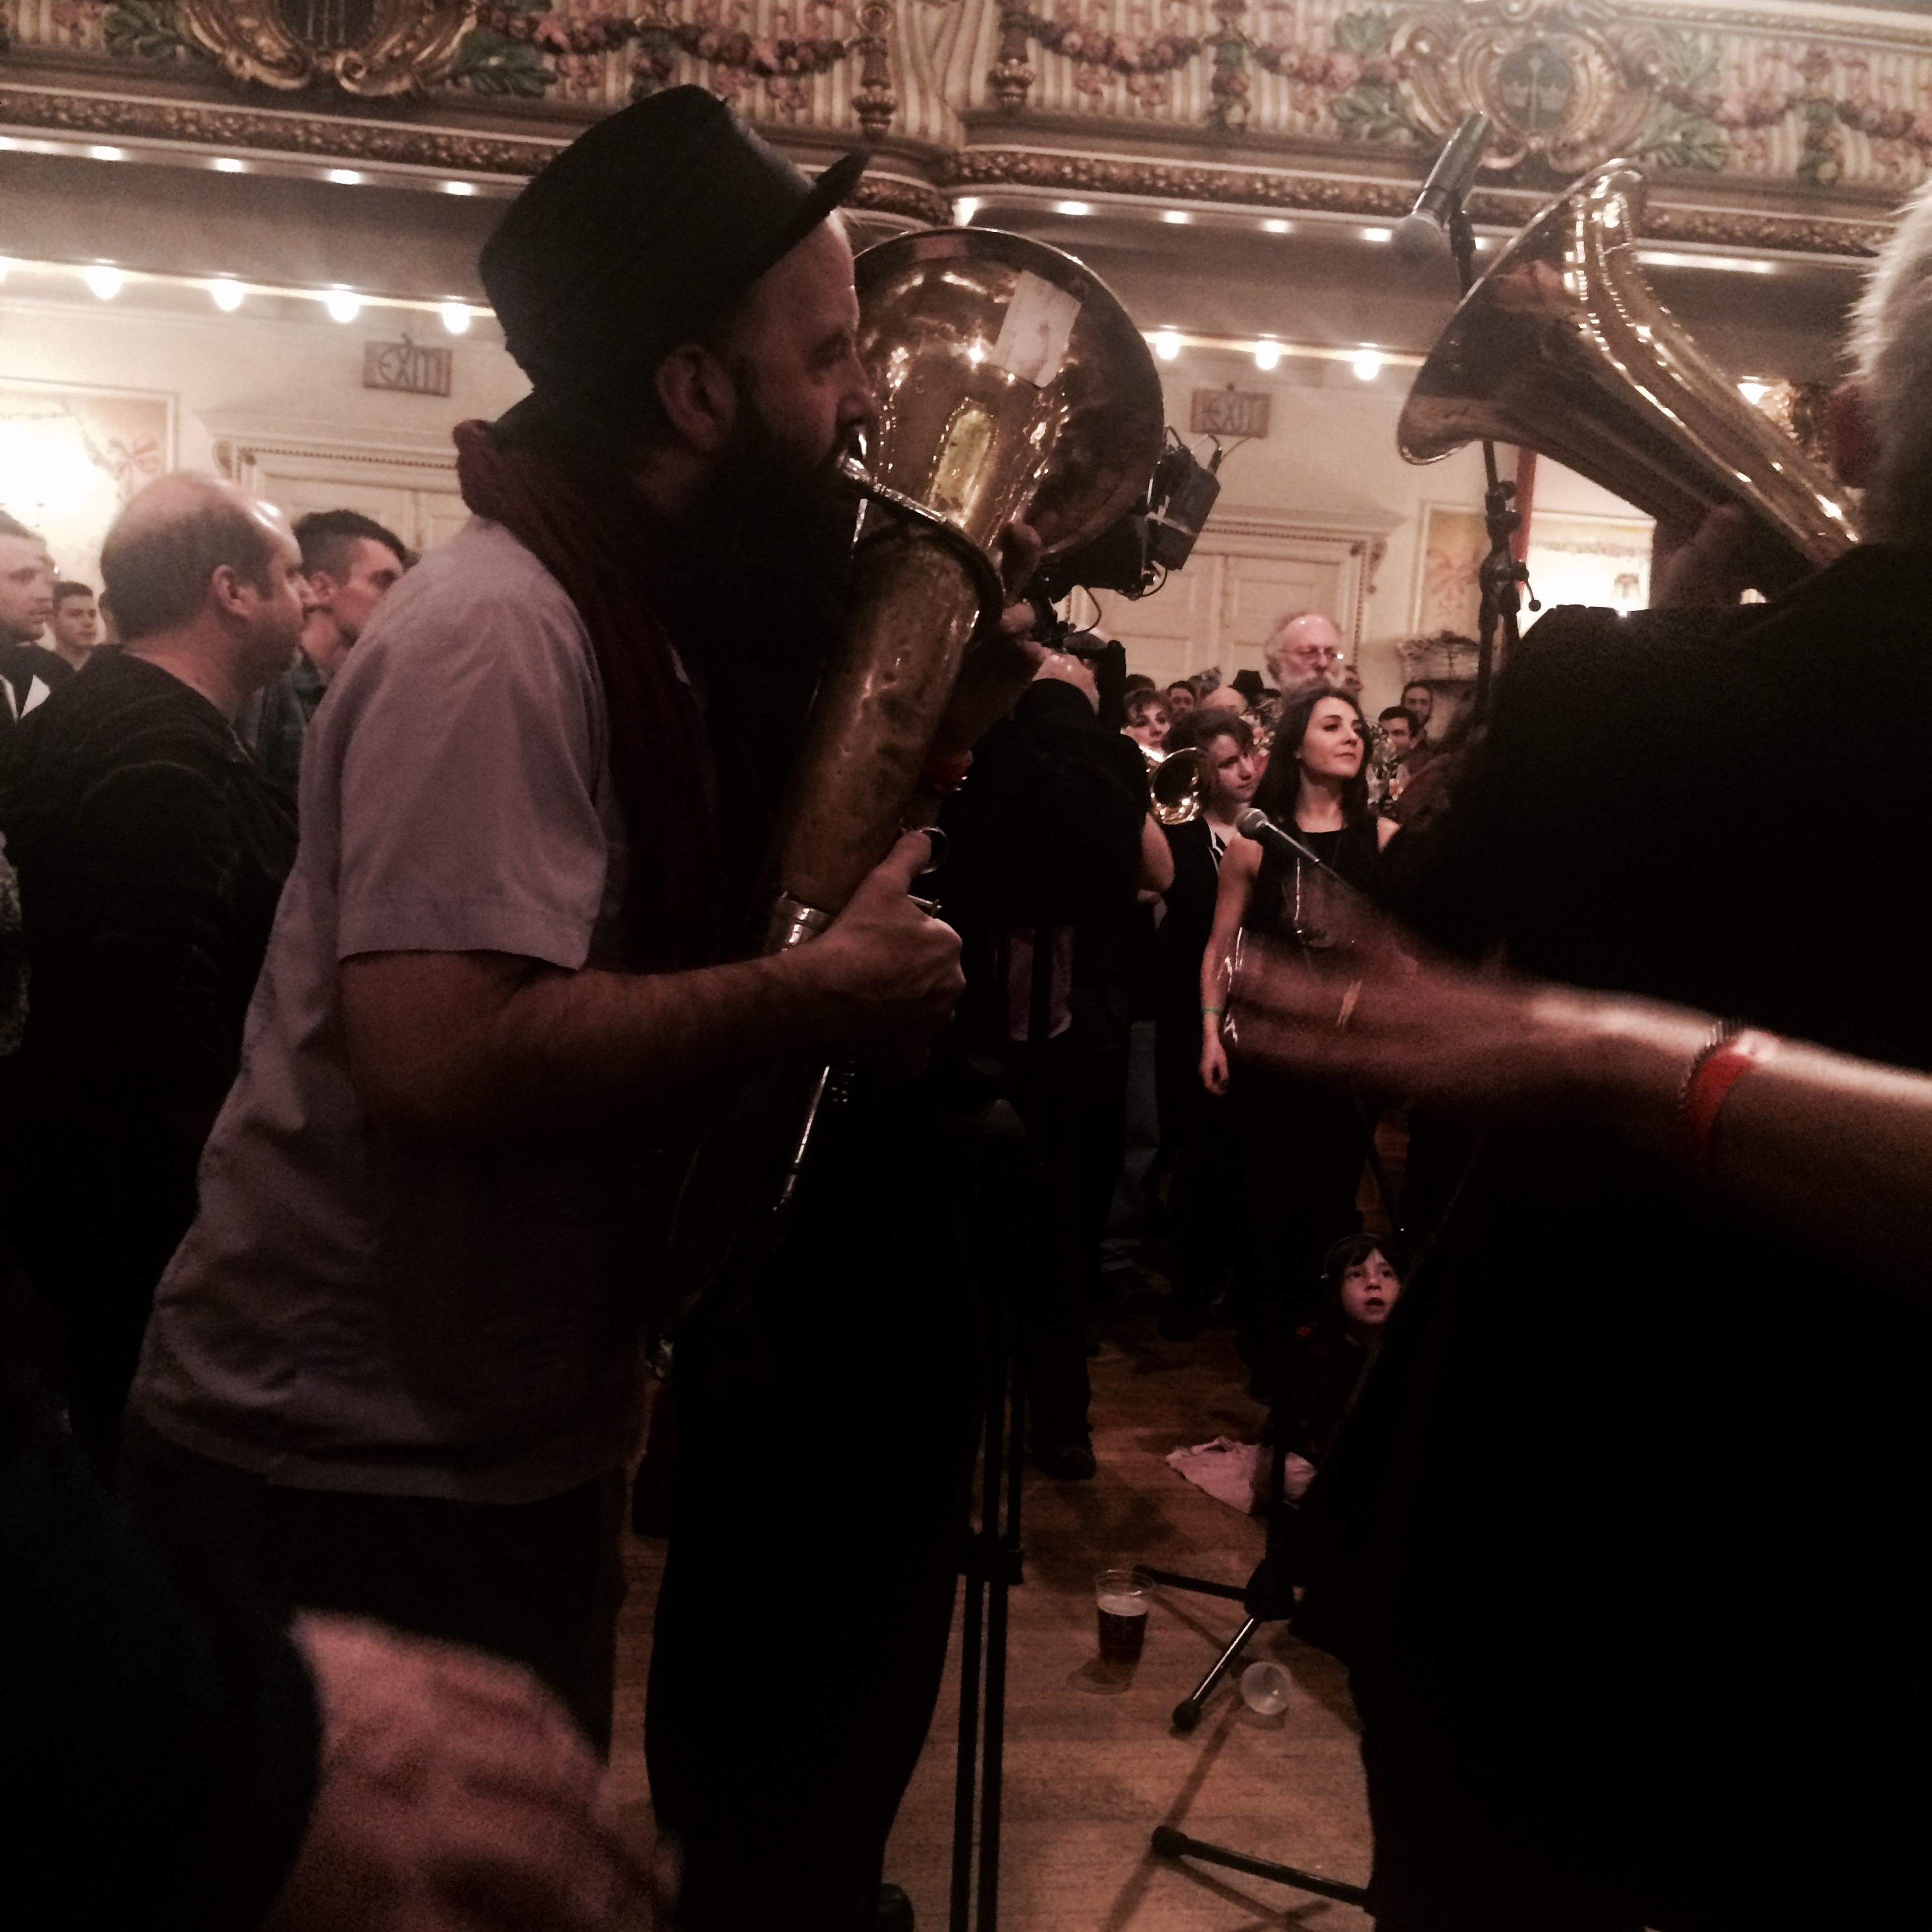 Scene from #Golden Festival at Grand Prospect Hall , a fun night of music and dancing. Here is Veveritse Brass Band Macedonian style.